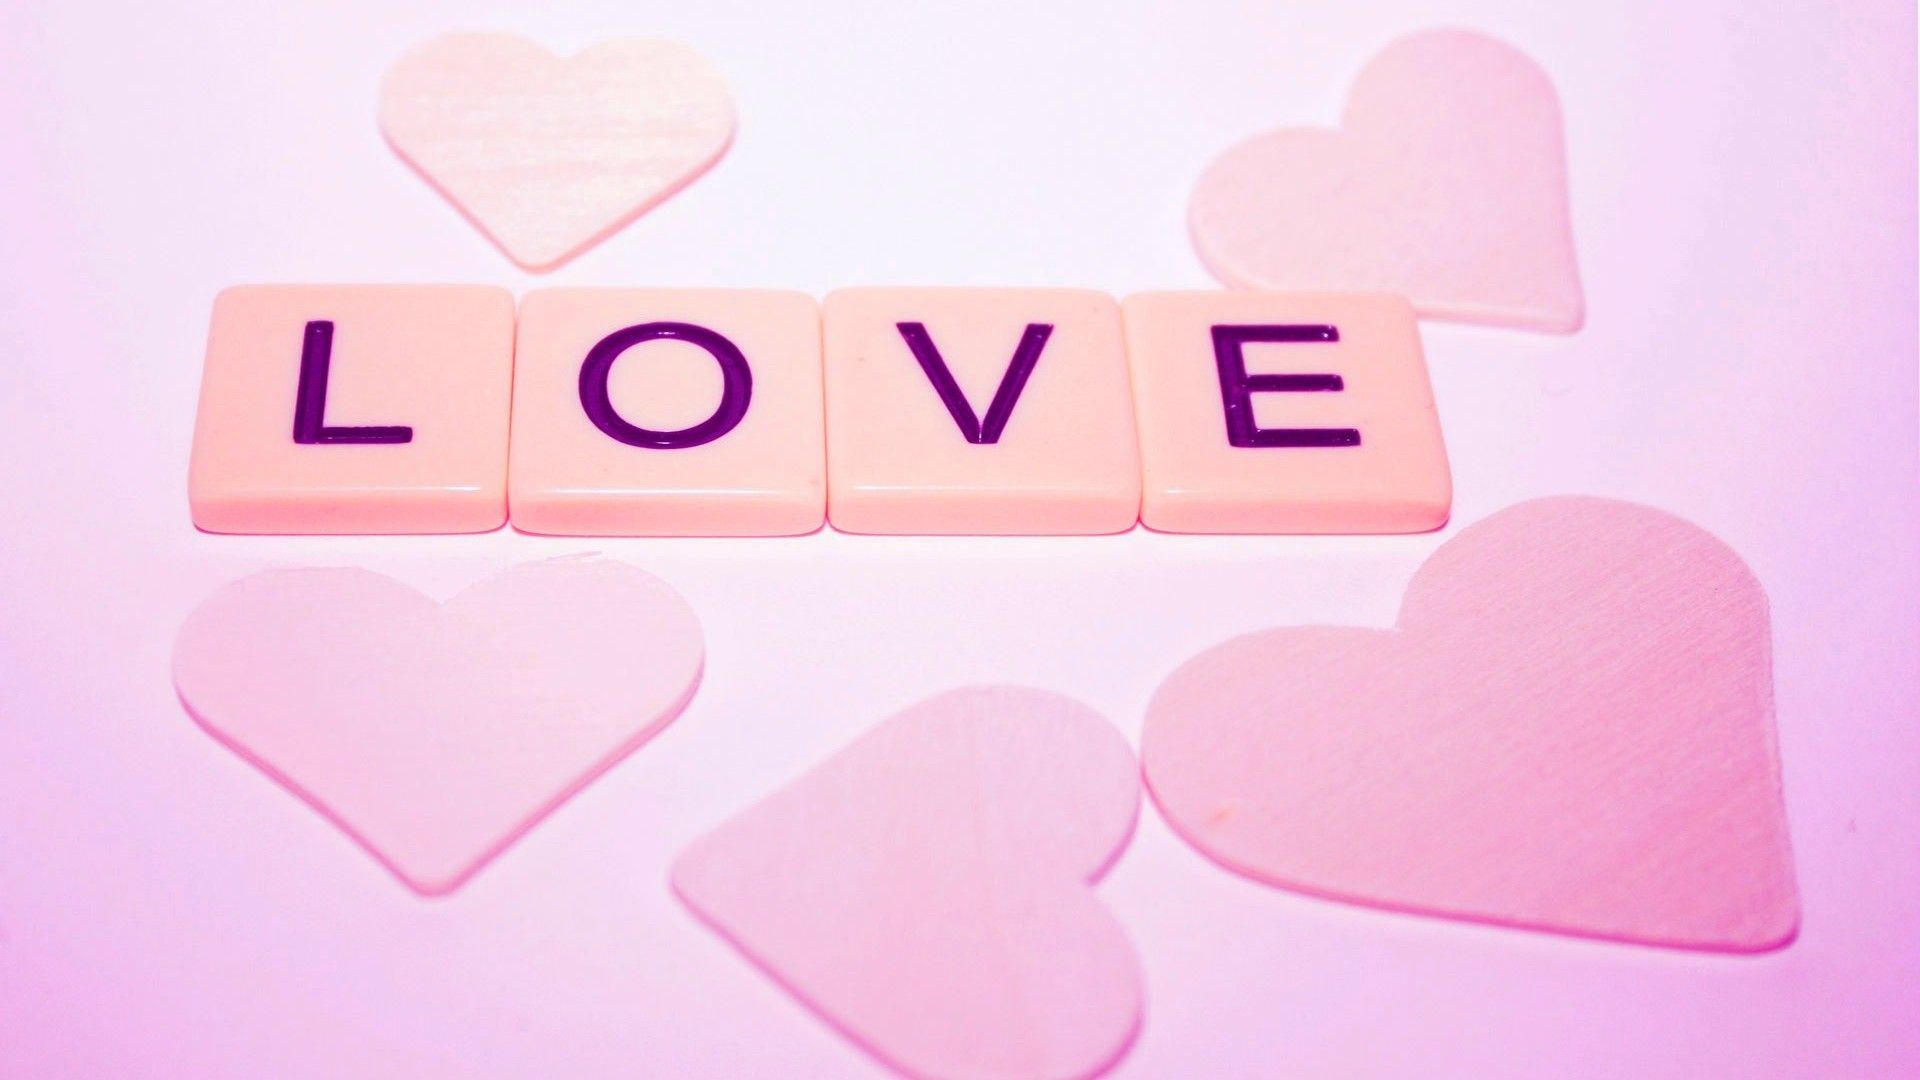 Wallpaper For Laptop Of Love : cute Love Wallpaper Full HD Download Desktop Mobile Backgrounds HD Wallpapers Pinterest ...